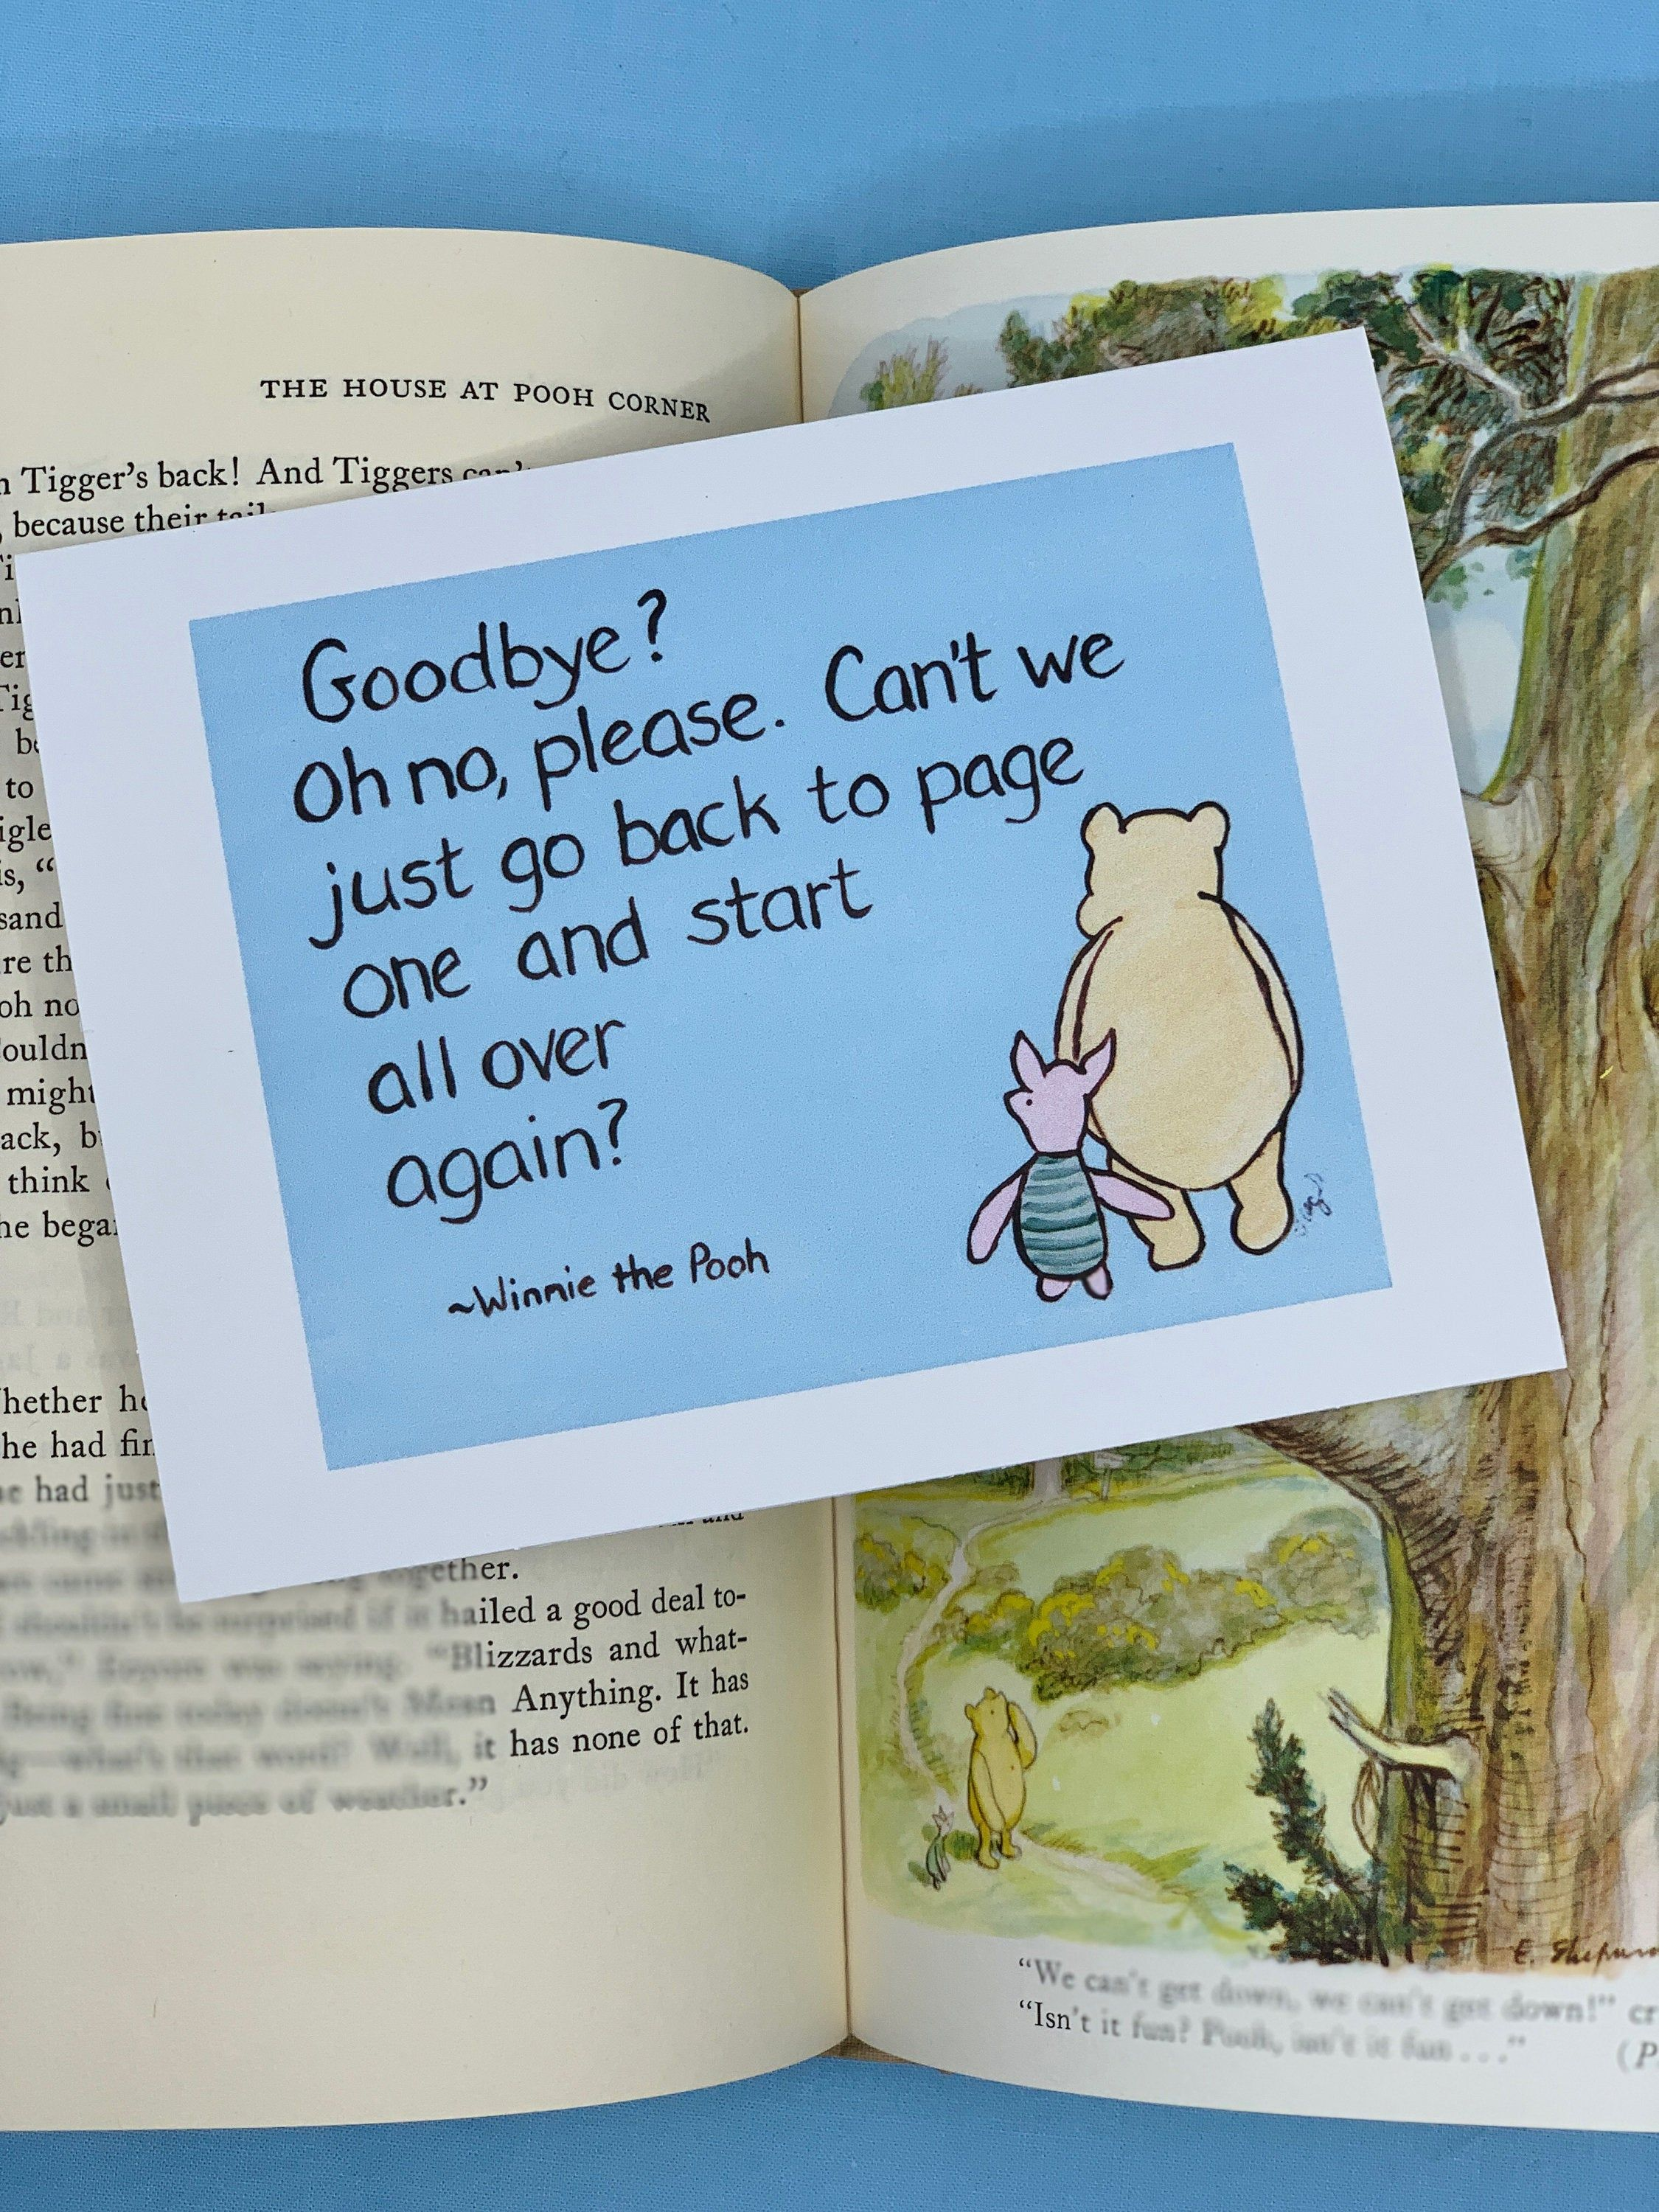 Pooh and Eeyore goodbye card goodbye card Winnie the Pooh quote